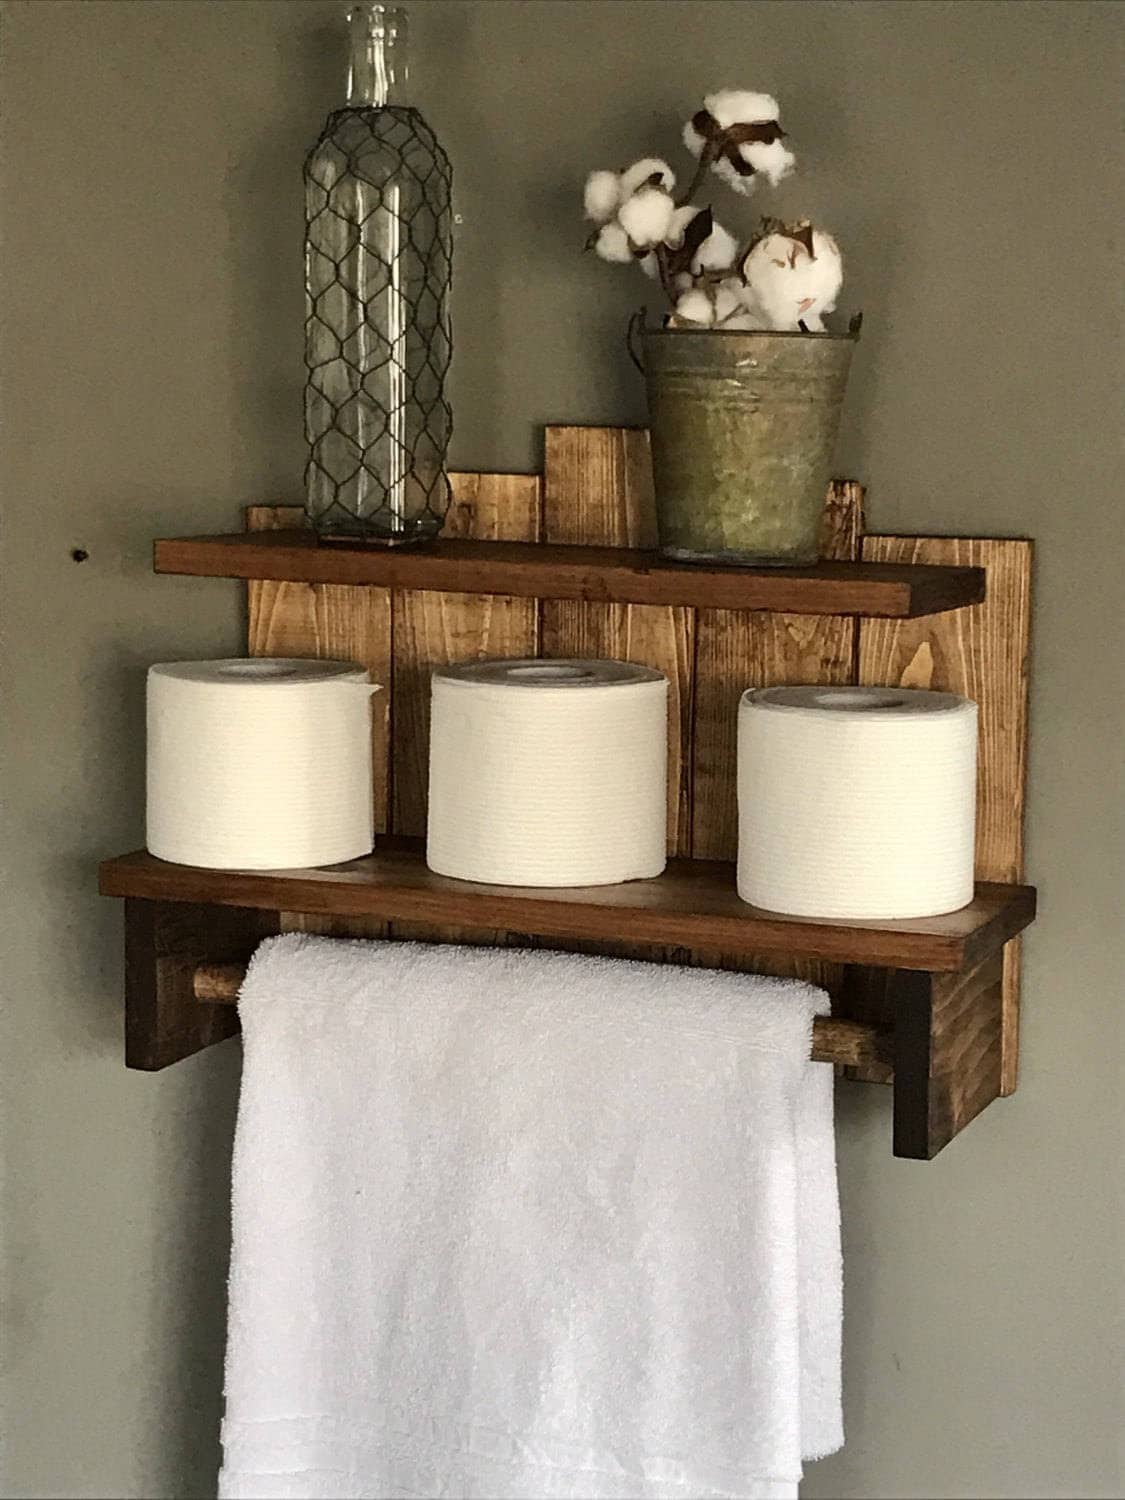 Farmhouse Hand Towel Holder Bathroom Storage Rustic Towel Holder Storage For